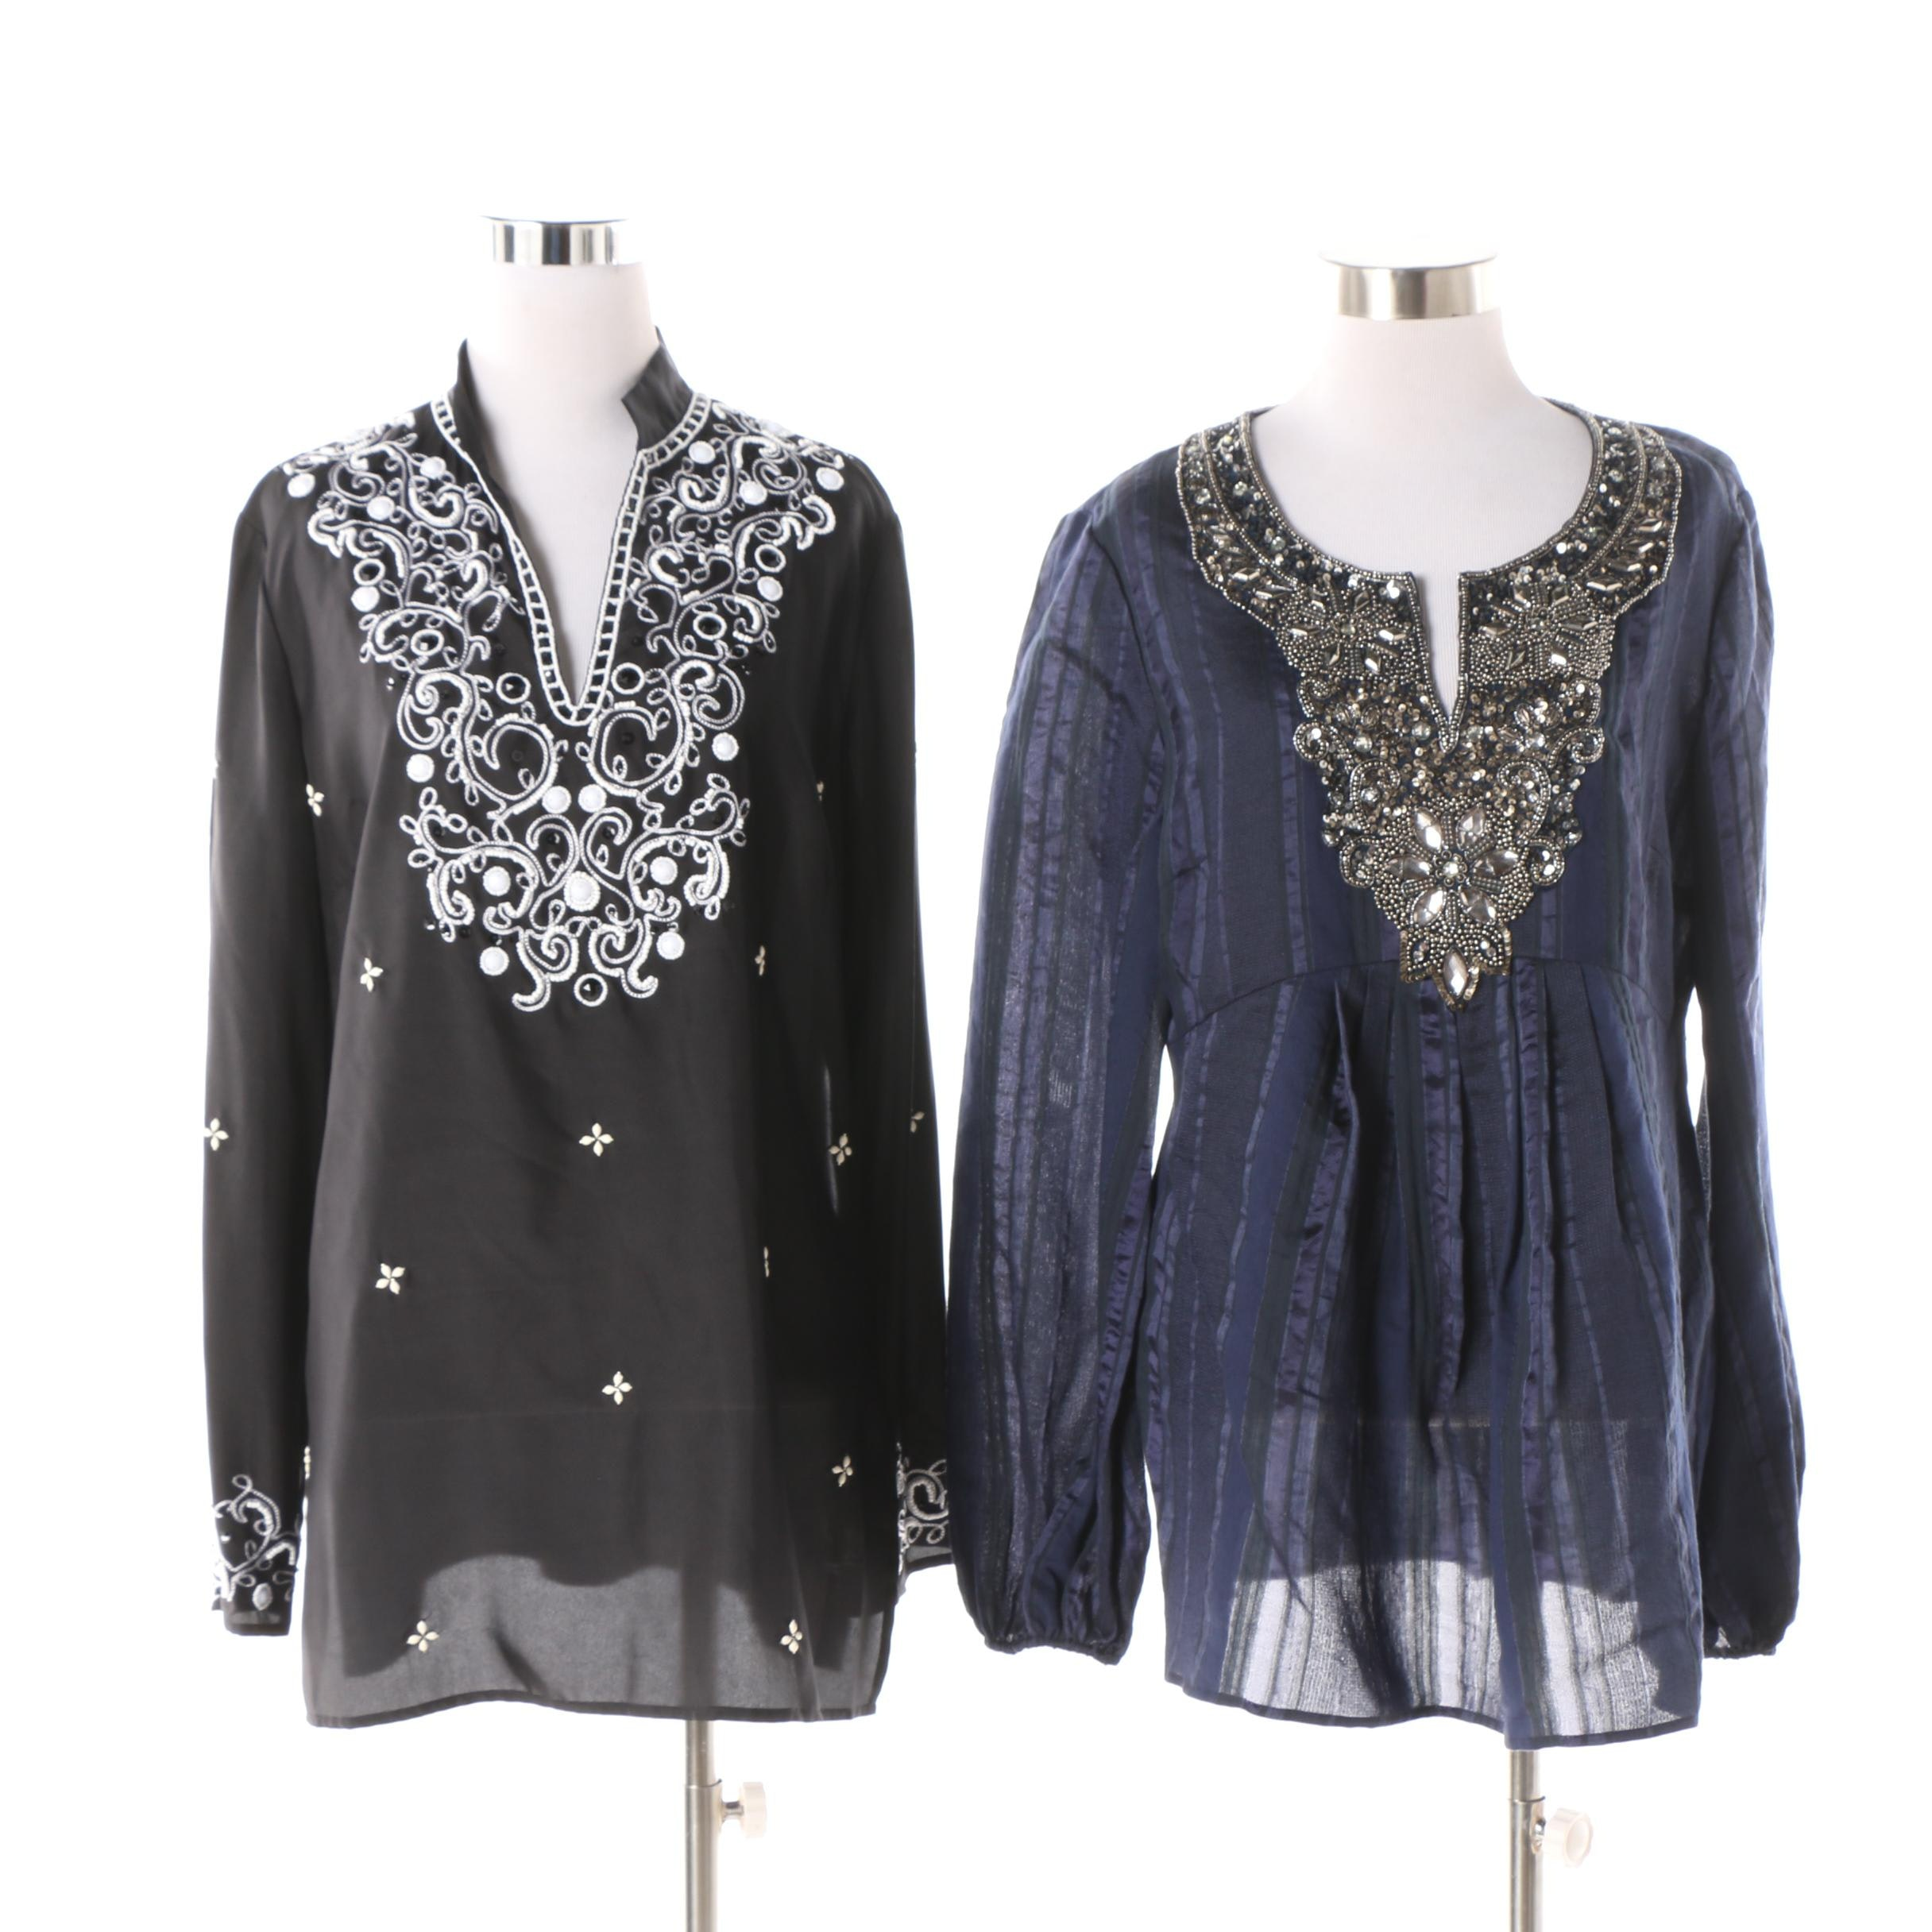 Lafayette 148 New York Embellished and Embroidered Tunics